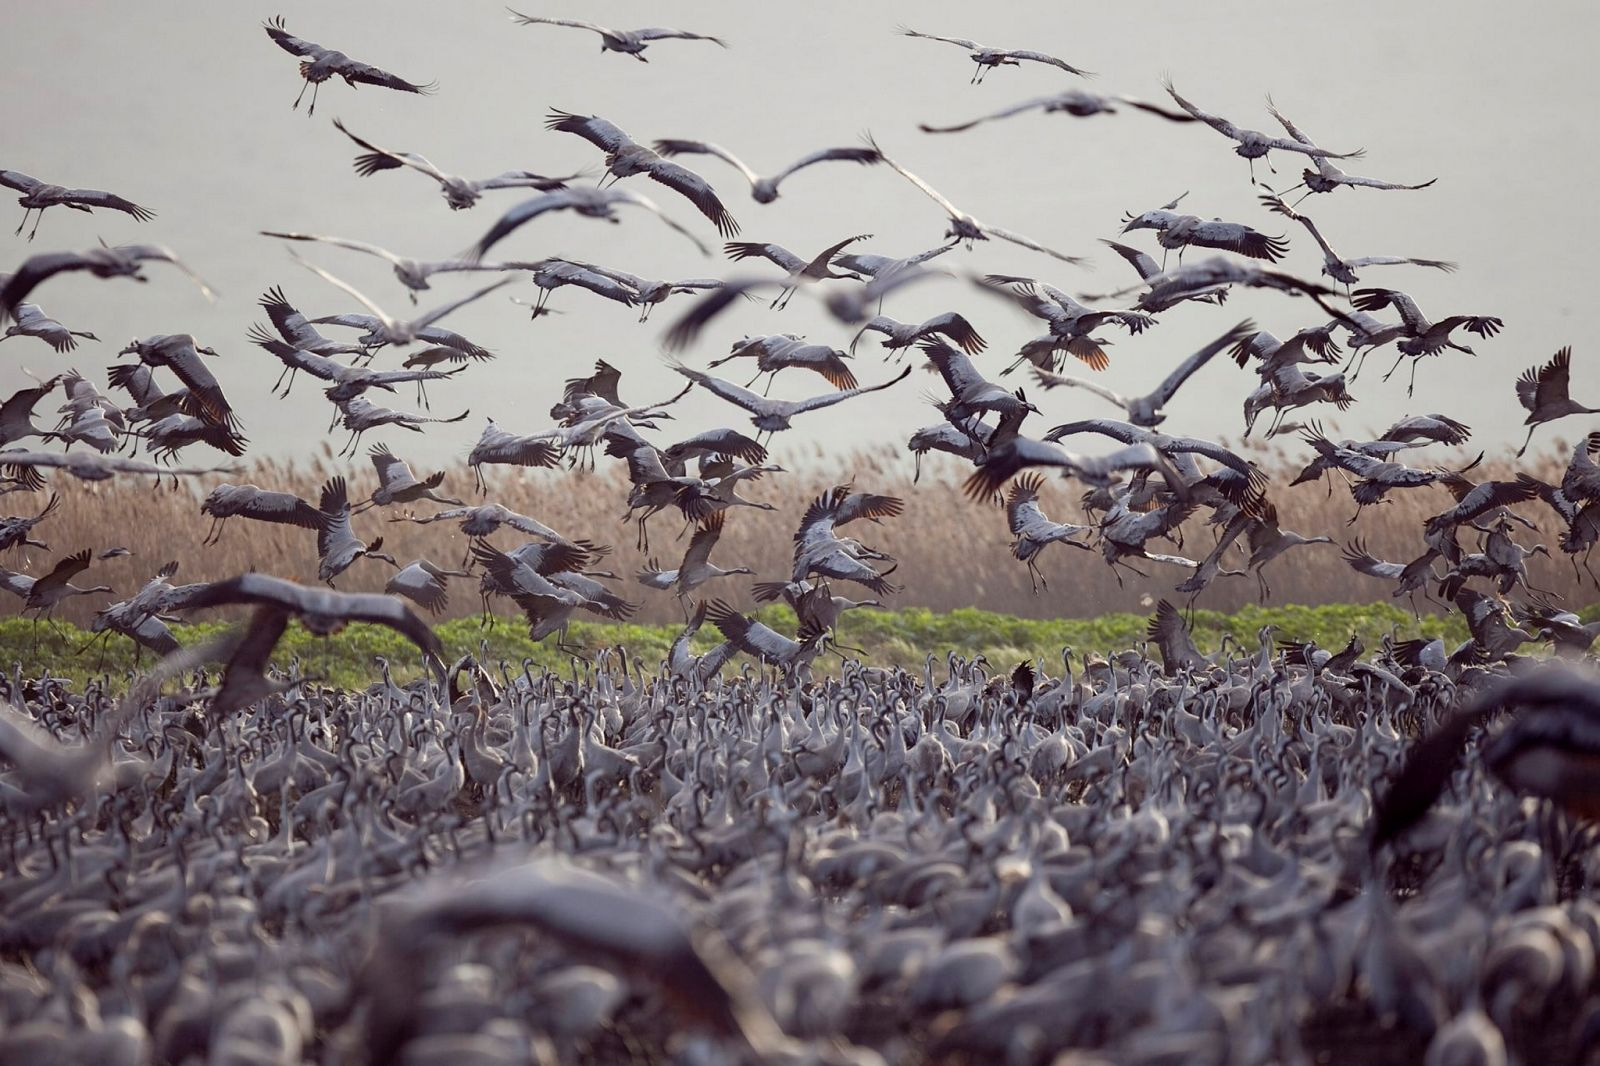 Cranes at the Hula Valley. Photo by Ilan Ramati/Flash90